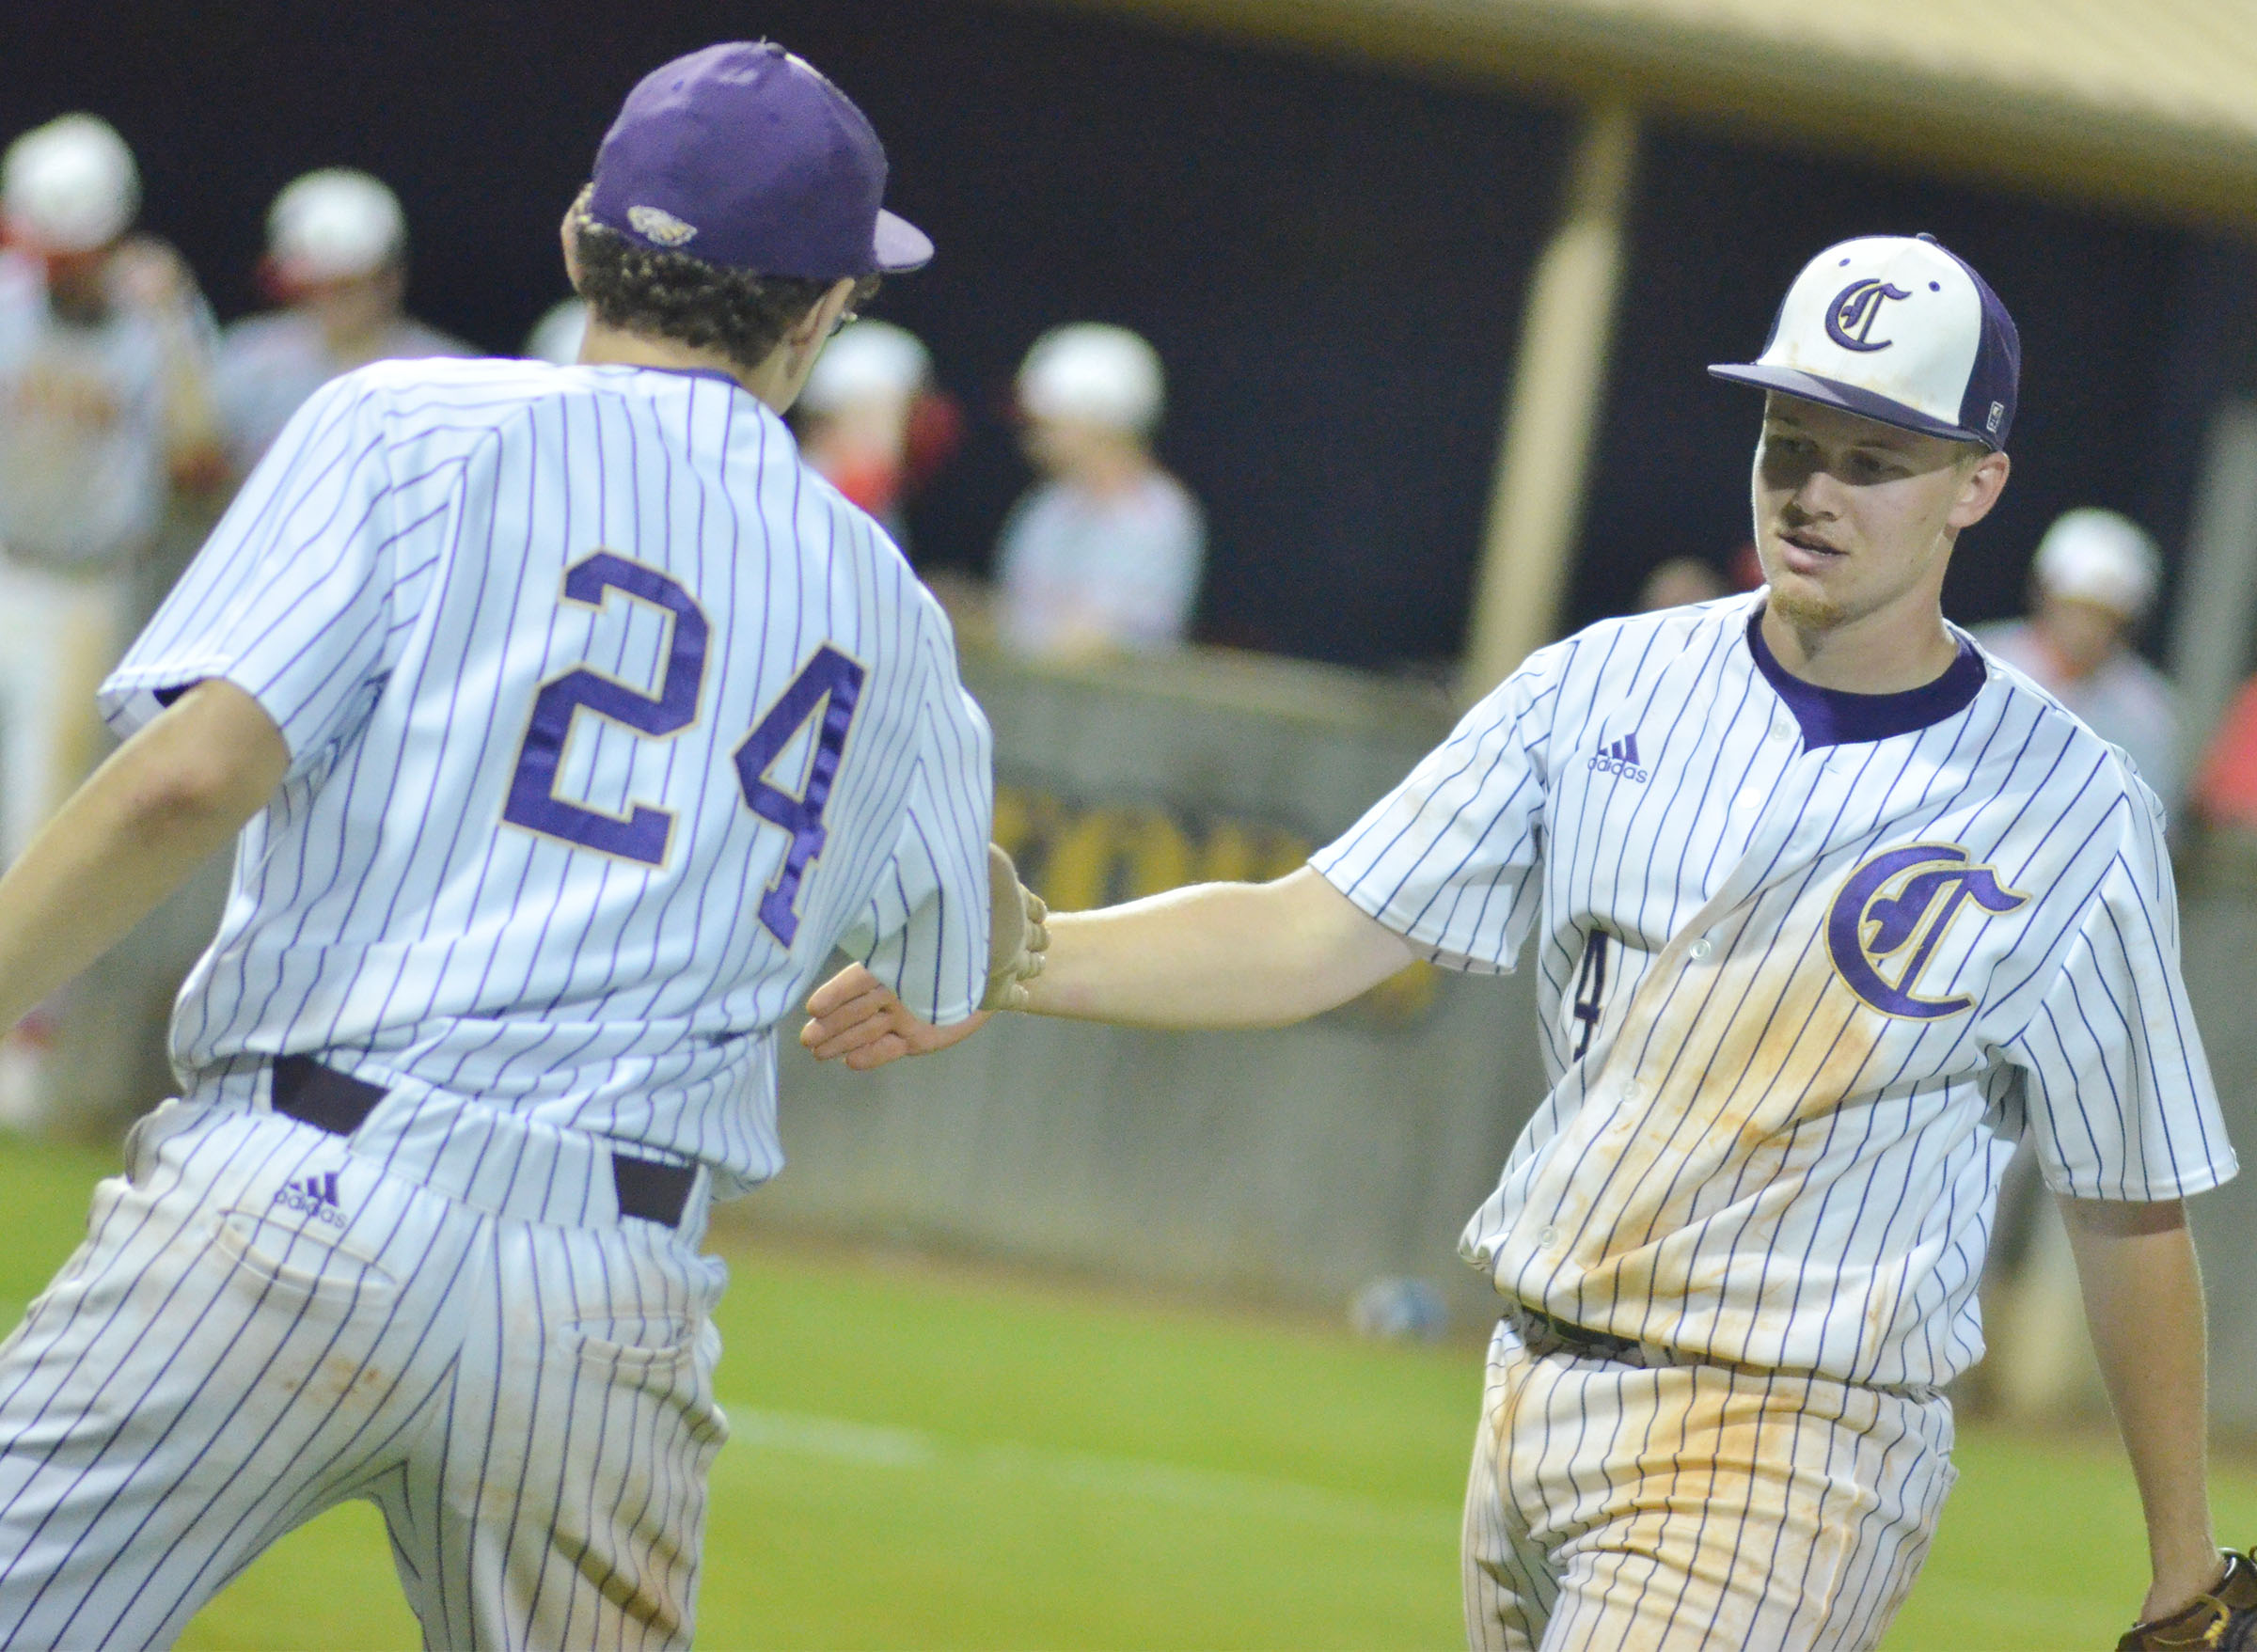 CHS junior Wyatt Houk is congratulated by freshman Brennon Wheeler after getting the save.